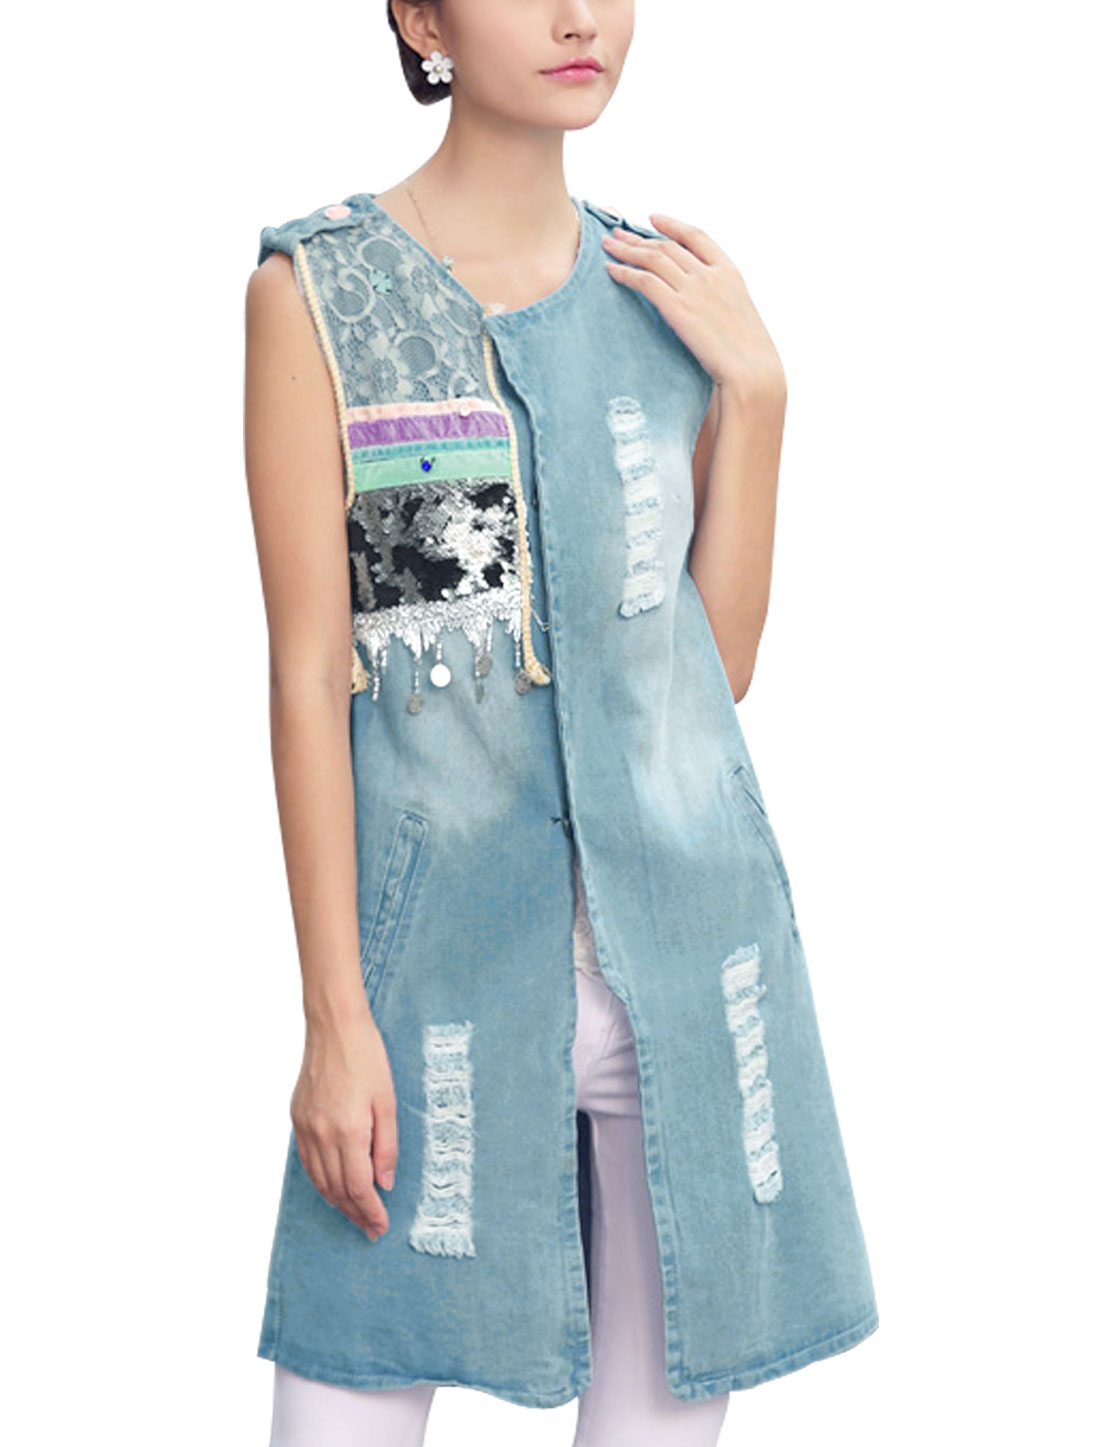 Lady Single Breasted Two Fake Pockets Destroyed Design Tunic Jean Jacket Light Blue S